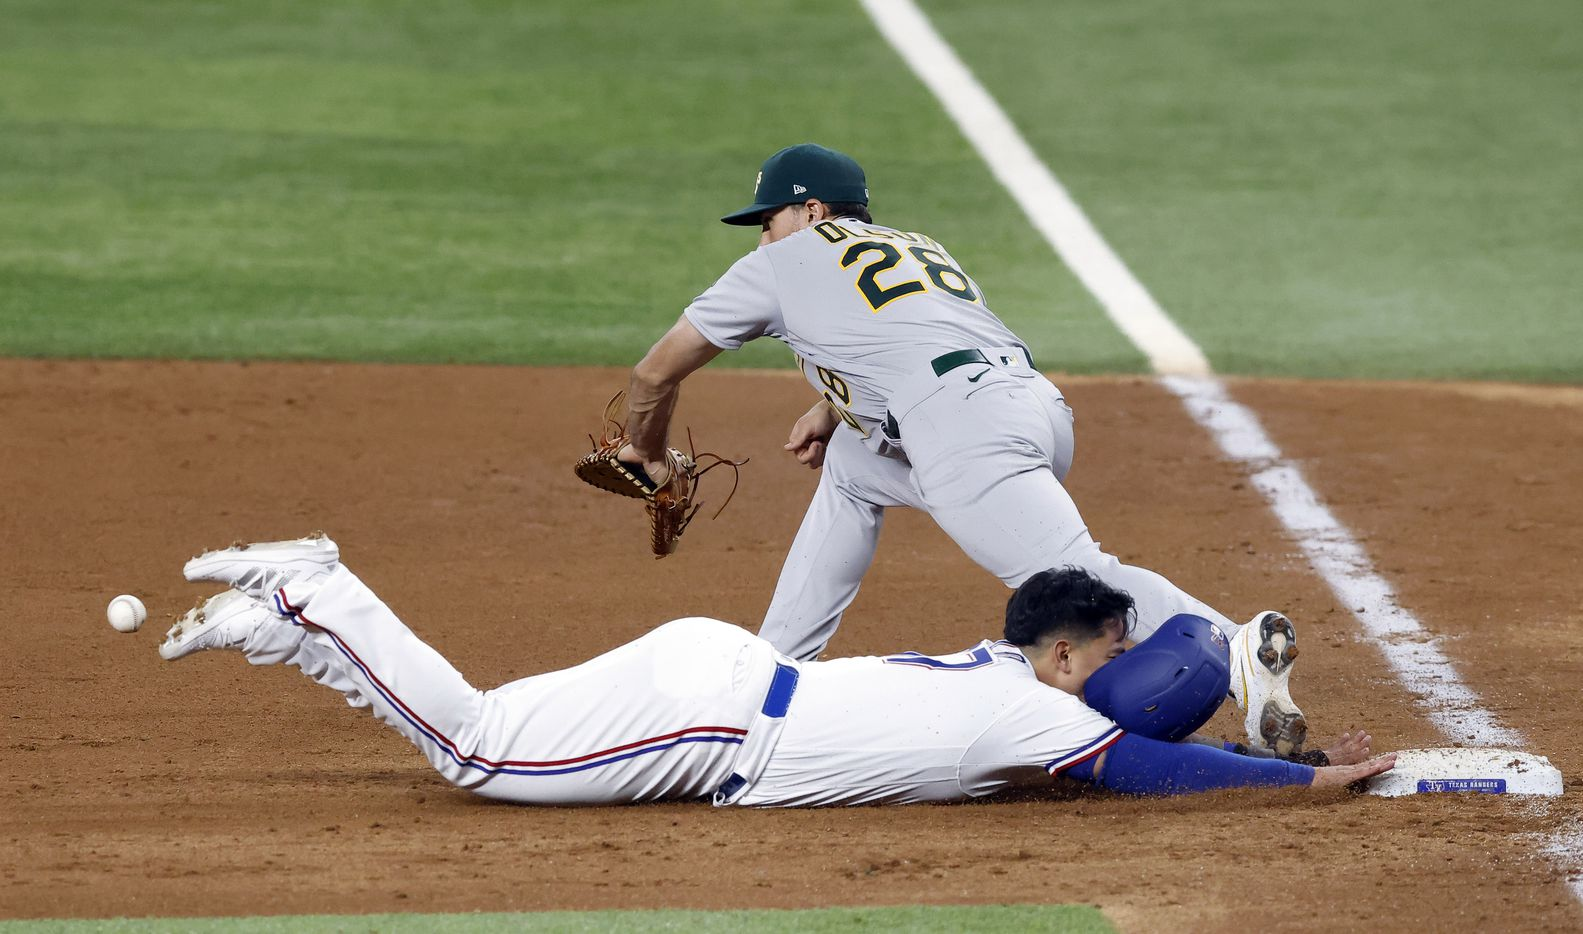 Texas Rangers Yohel Pozo (37) races back to first on a fly out to left field as Oakland Athletics first baseman Matt Olson (28) has trouble fielding the ball in the sixth inning at Globe Life Field in Arlington, Saturday, August 14, 2021.(Tom Fox/The Dallas Morning News)